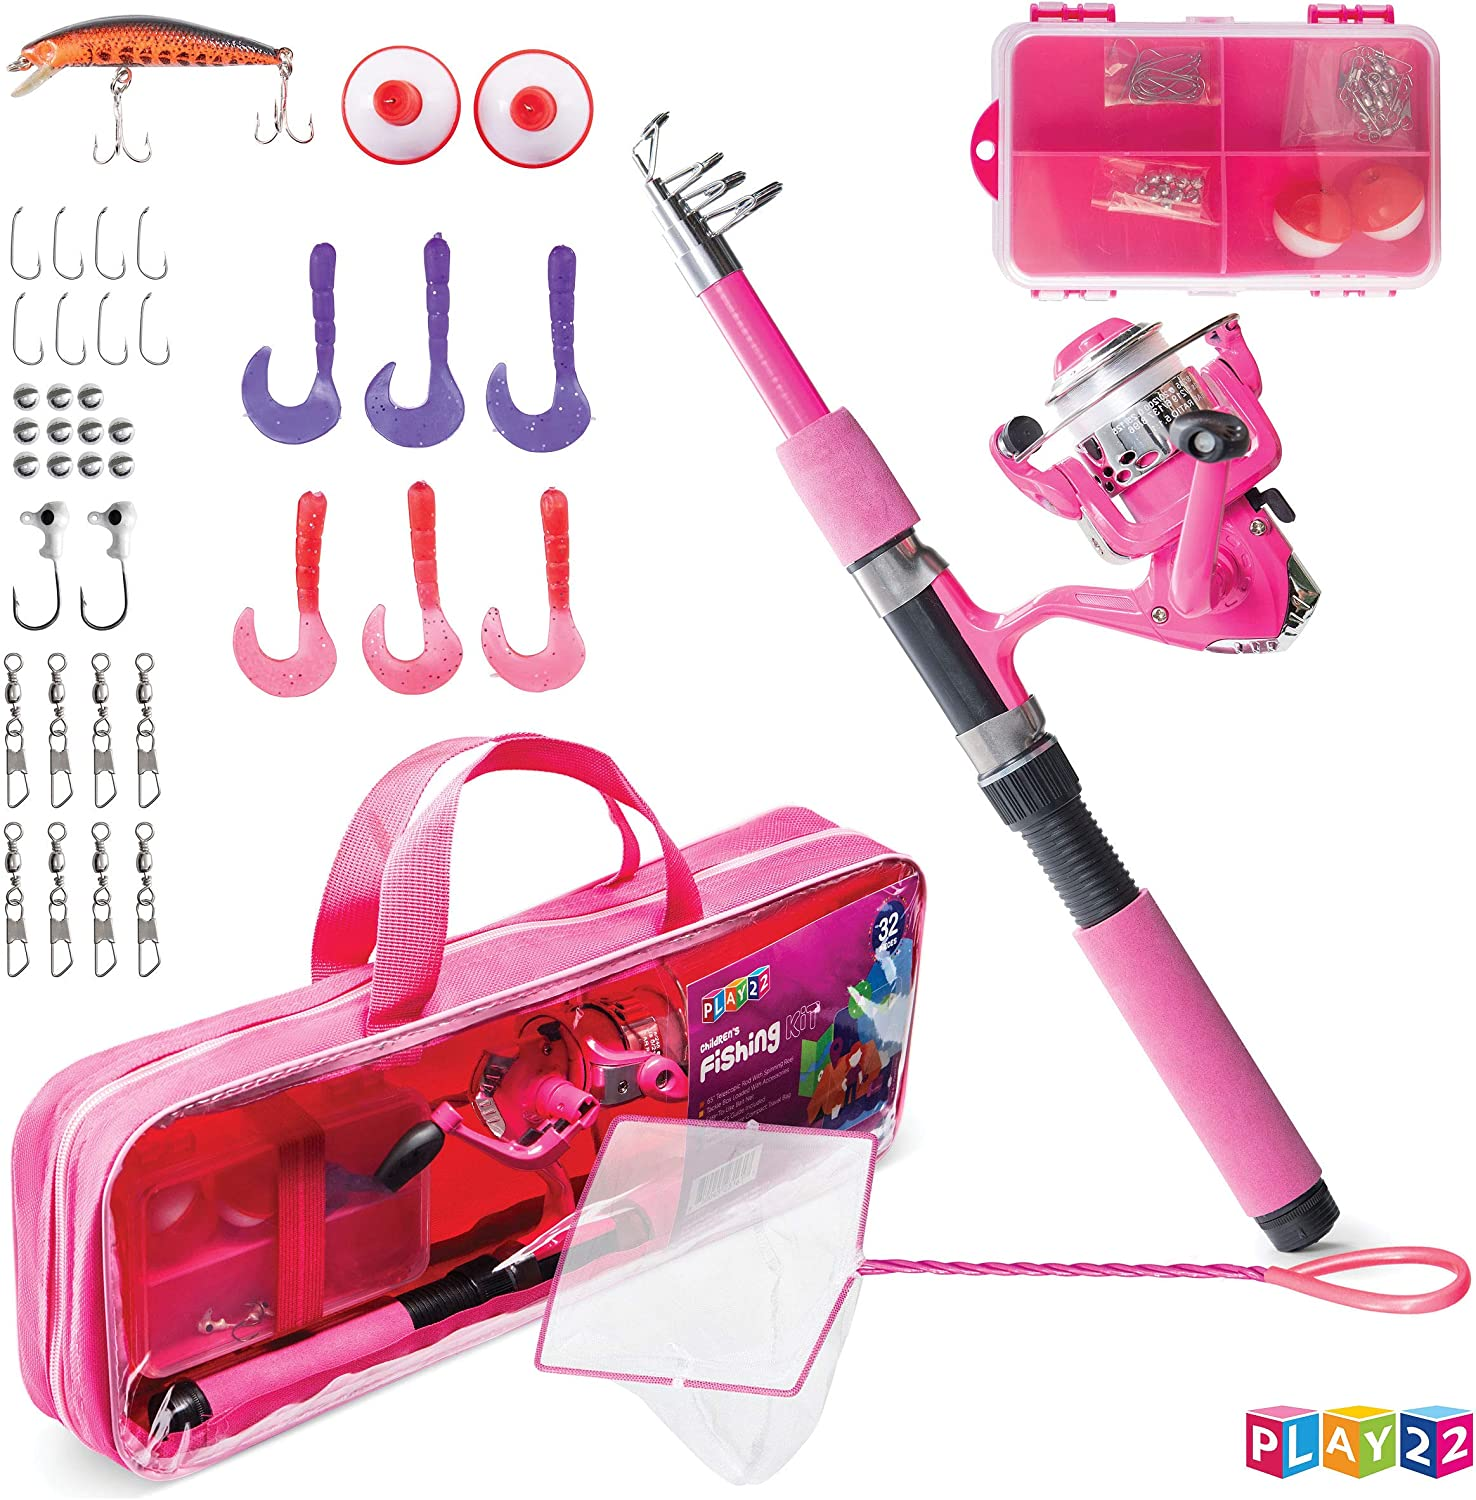 Amazon Com Play22 Kids Fishing Pole Pink 40 Set Kids Fishing Rod And Reel Combos Fishing Poles For Youth Kids Includes Fishing Tackle Fishing Gear Fishing Lures Net Carry On